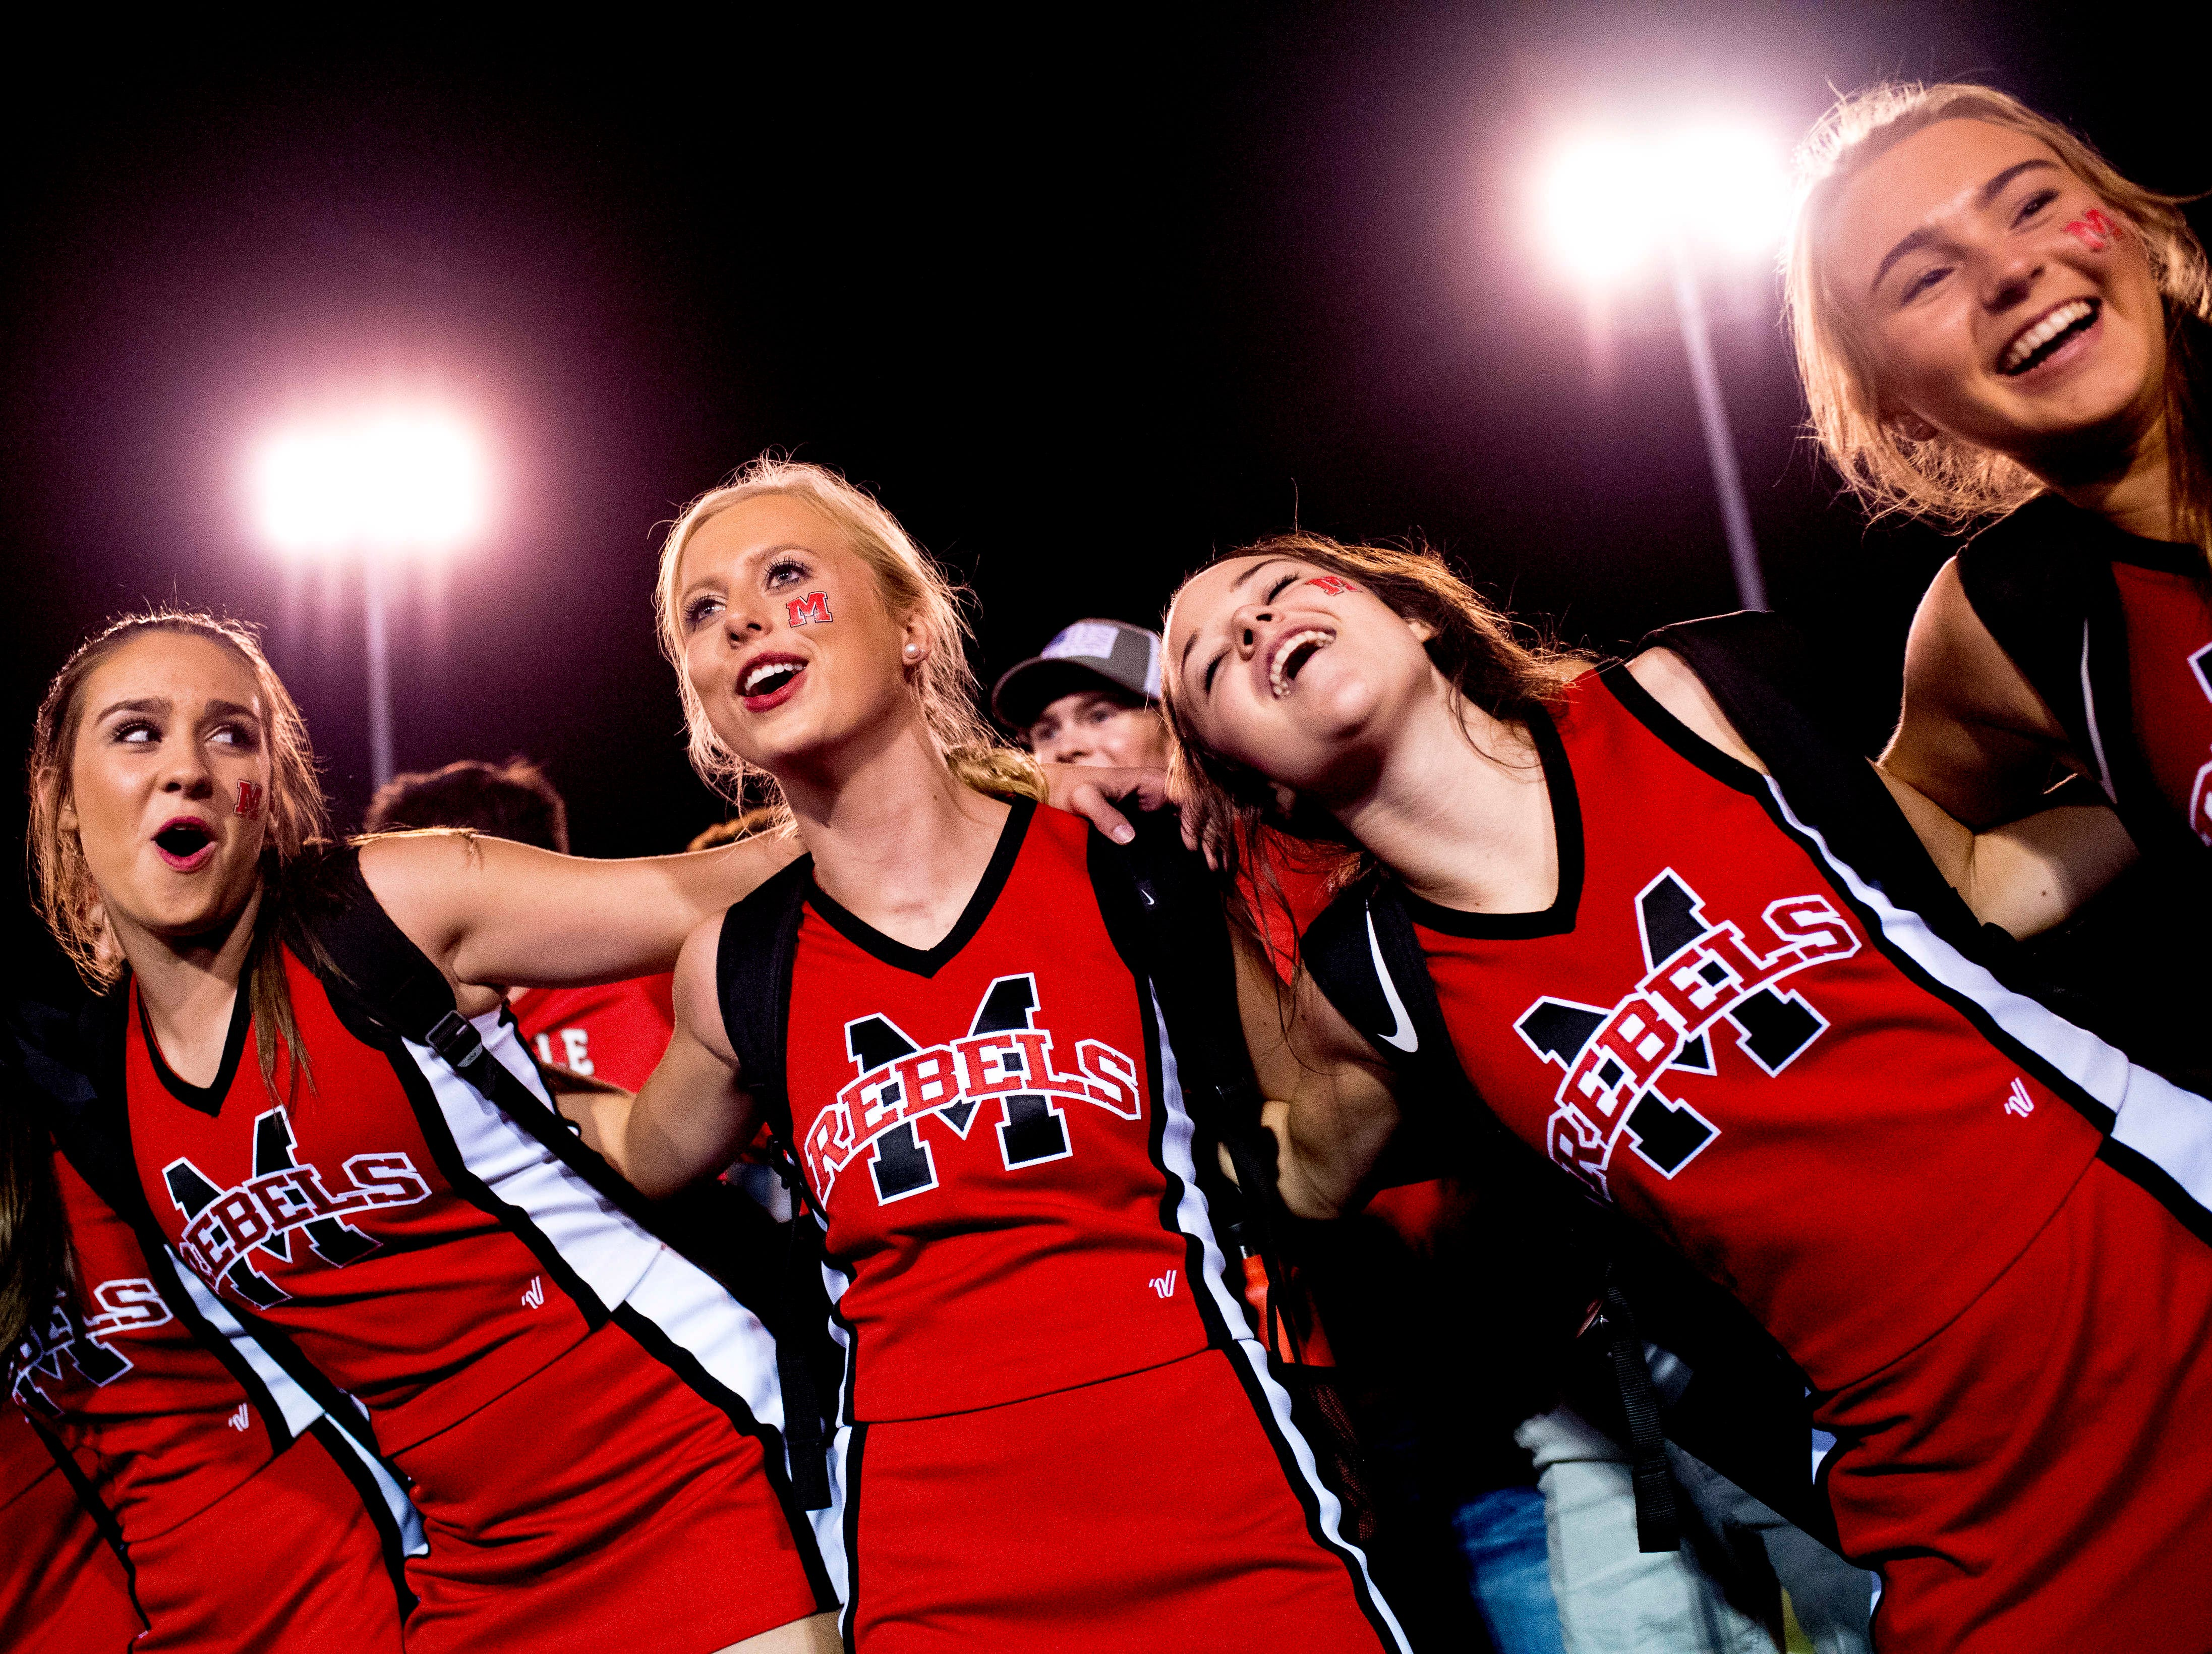 Maryville cheerleaders sing after defeating Oakland a football game between Maryville and Oakland at Maryville High School in Maryville, Tennessee on Friday, August 24, 2018.